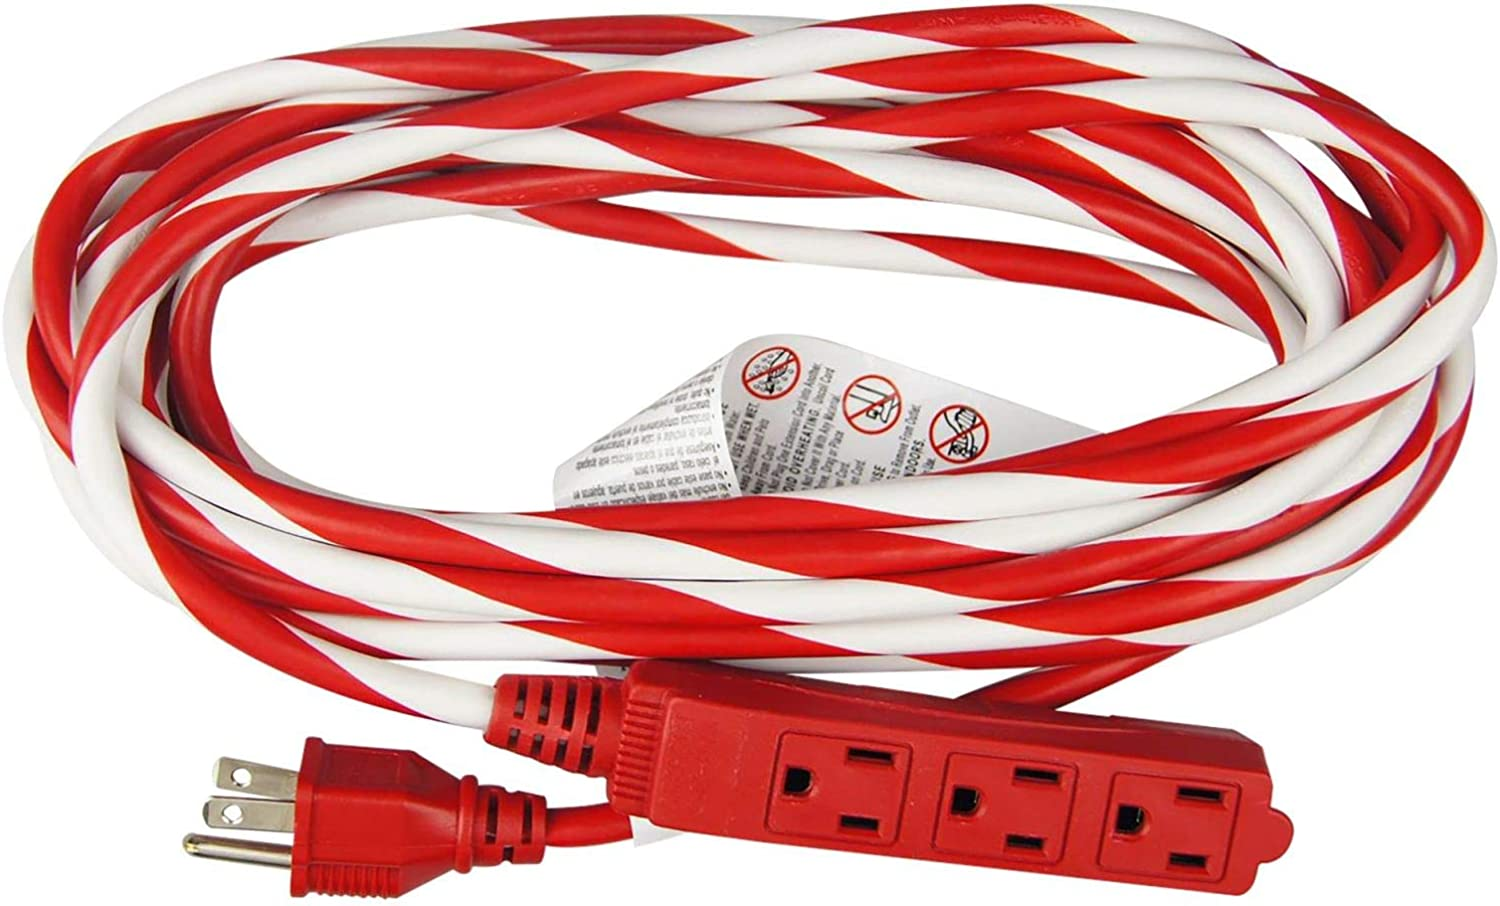 Ships free! Hyper Tough 25/' Exterior Rated Extension Cord with 3 prong outlet